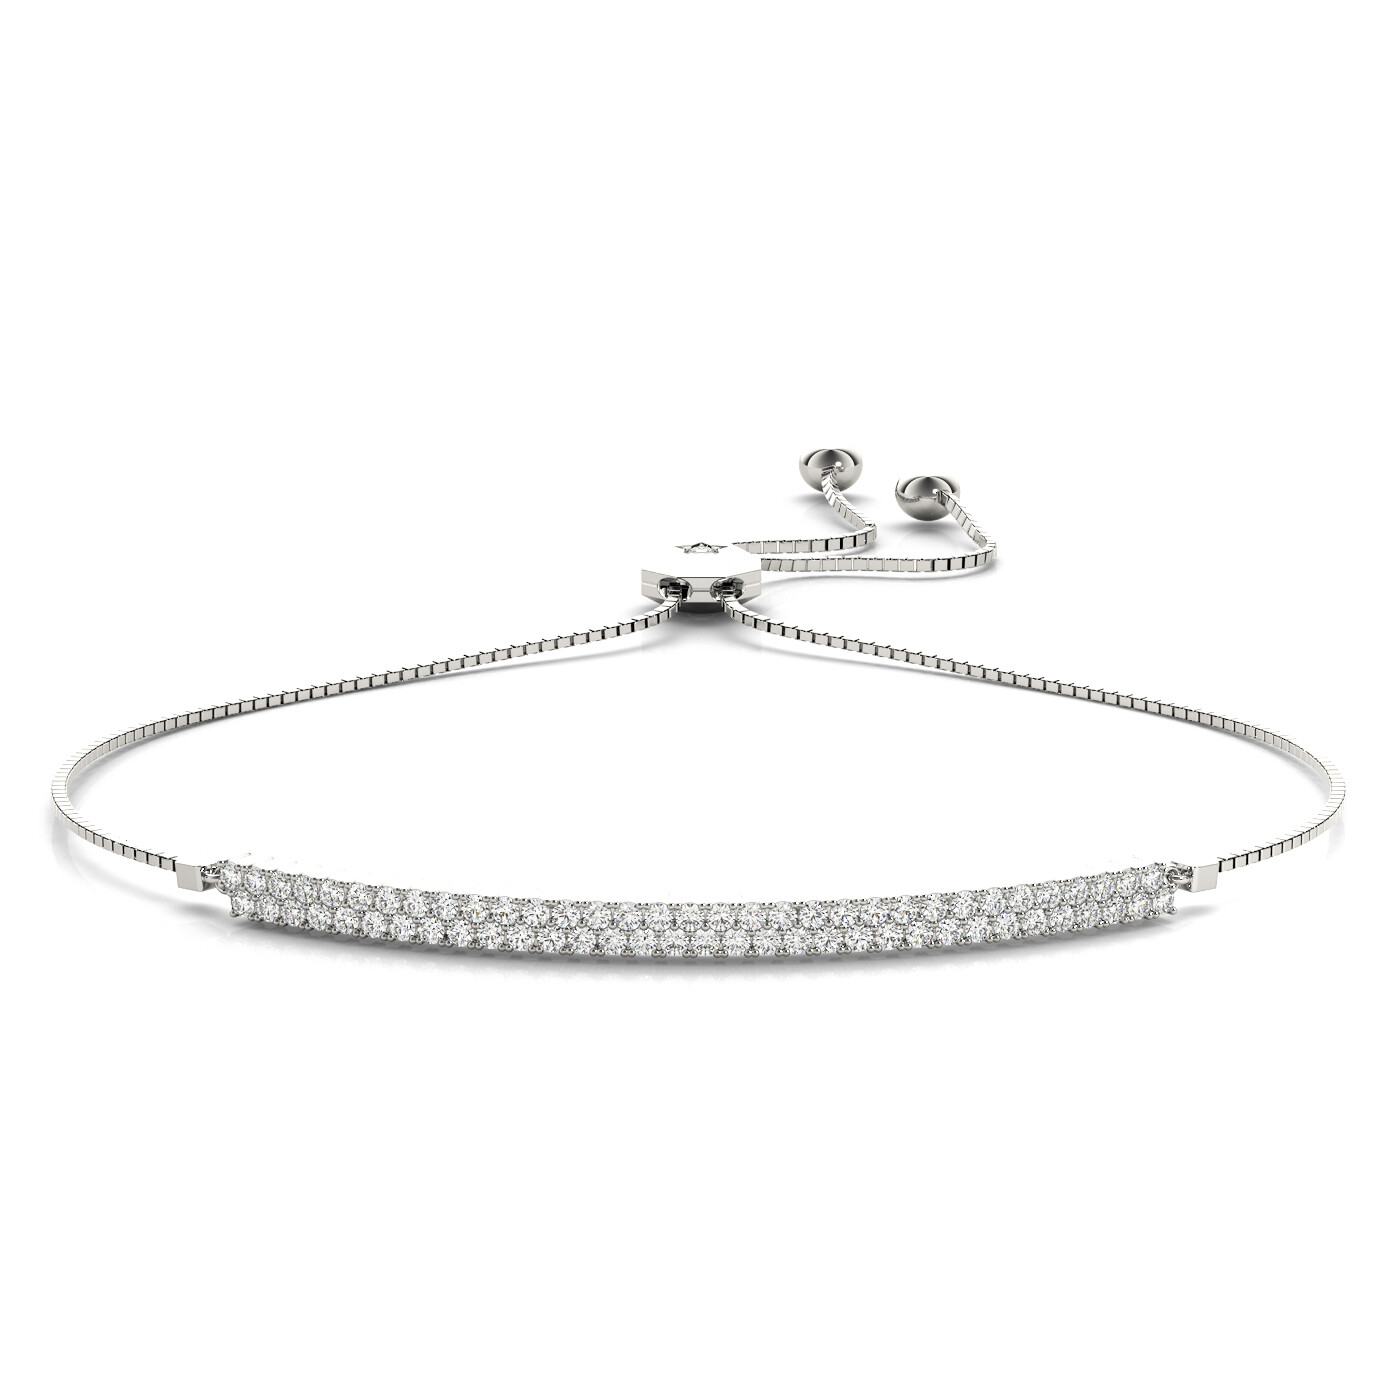 14K  Two Row Diamond Adjustable Bracelet,Diamond Bolo Bracelet